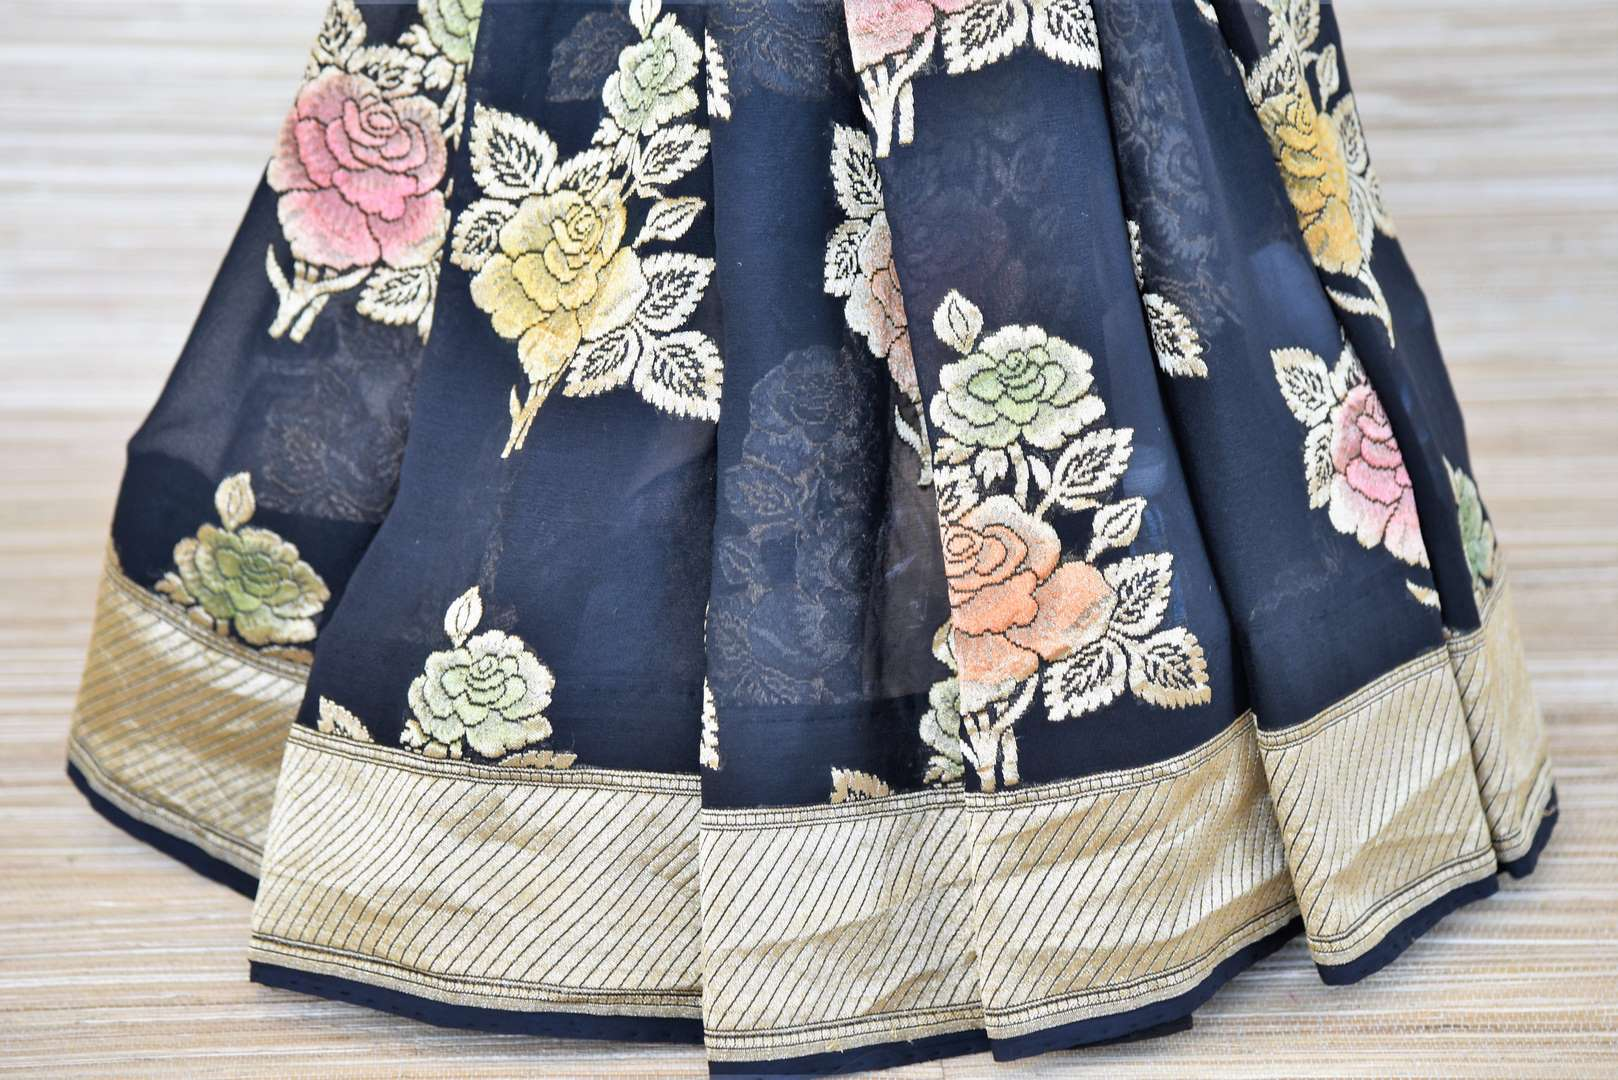 Buy midnight blue Banarasi georgette saree online in USA with flower zari buta and zari border. Make your ethnic wardrobe colorful and rich with a splendid collection of Banarasi saris from Pure Elegance Indian clothing store in USA. Shop online.-pleats